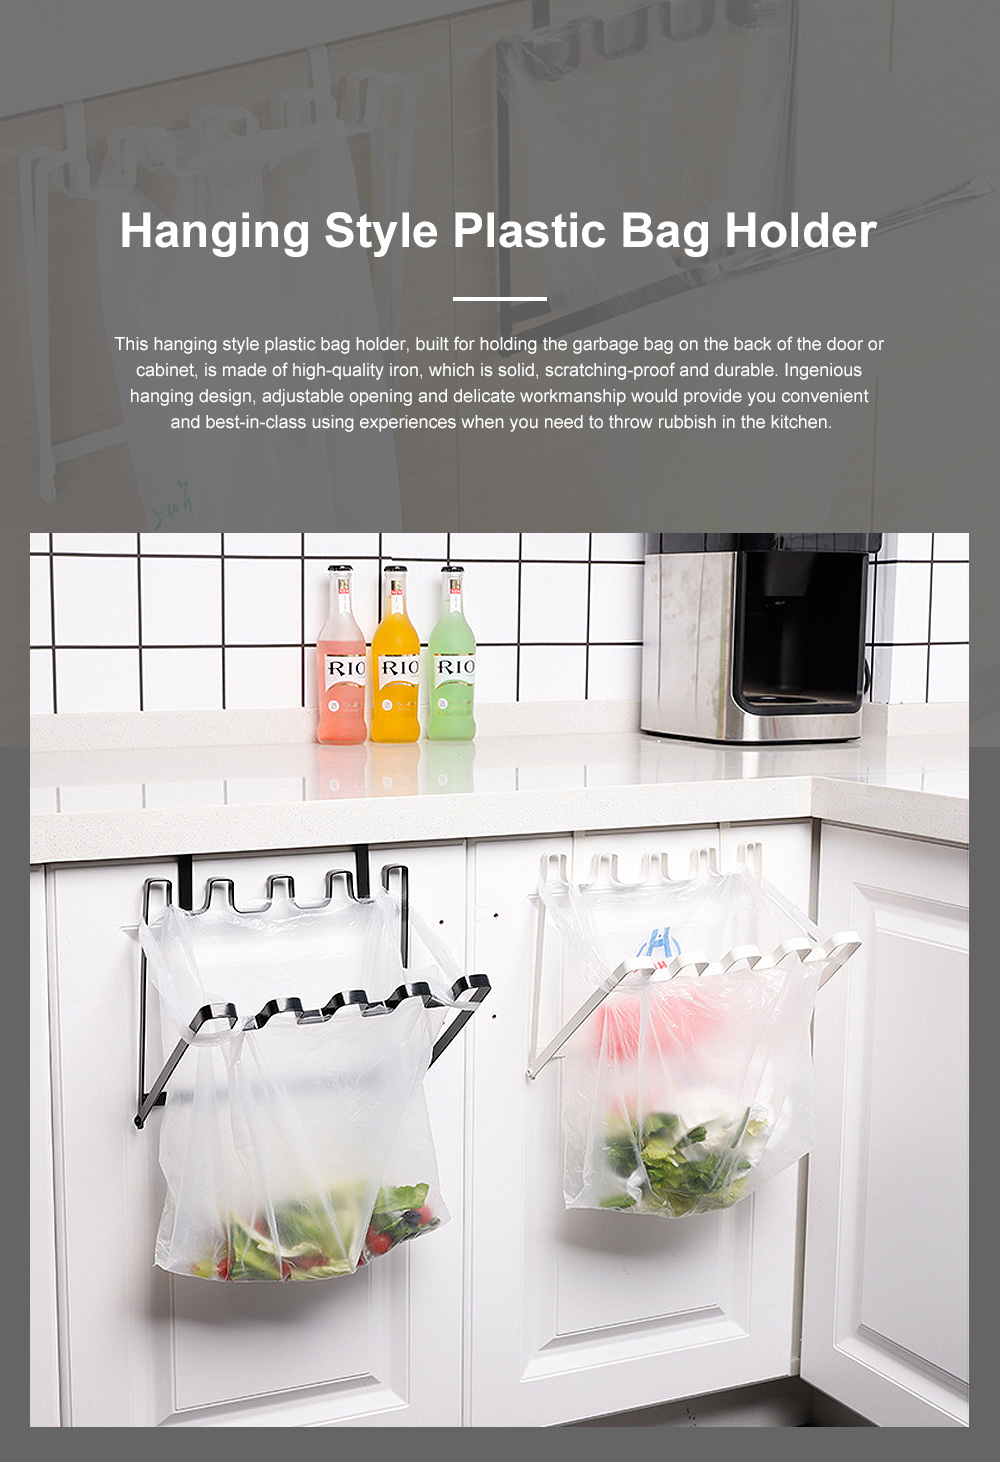 Minimalist Door Back Hanging Style Plastic Garbage Bag Holder Supporter Household Kitchen Accessories Tool 0